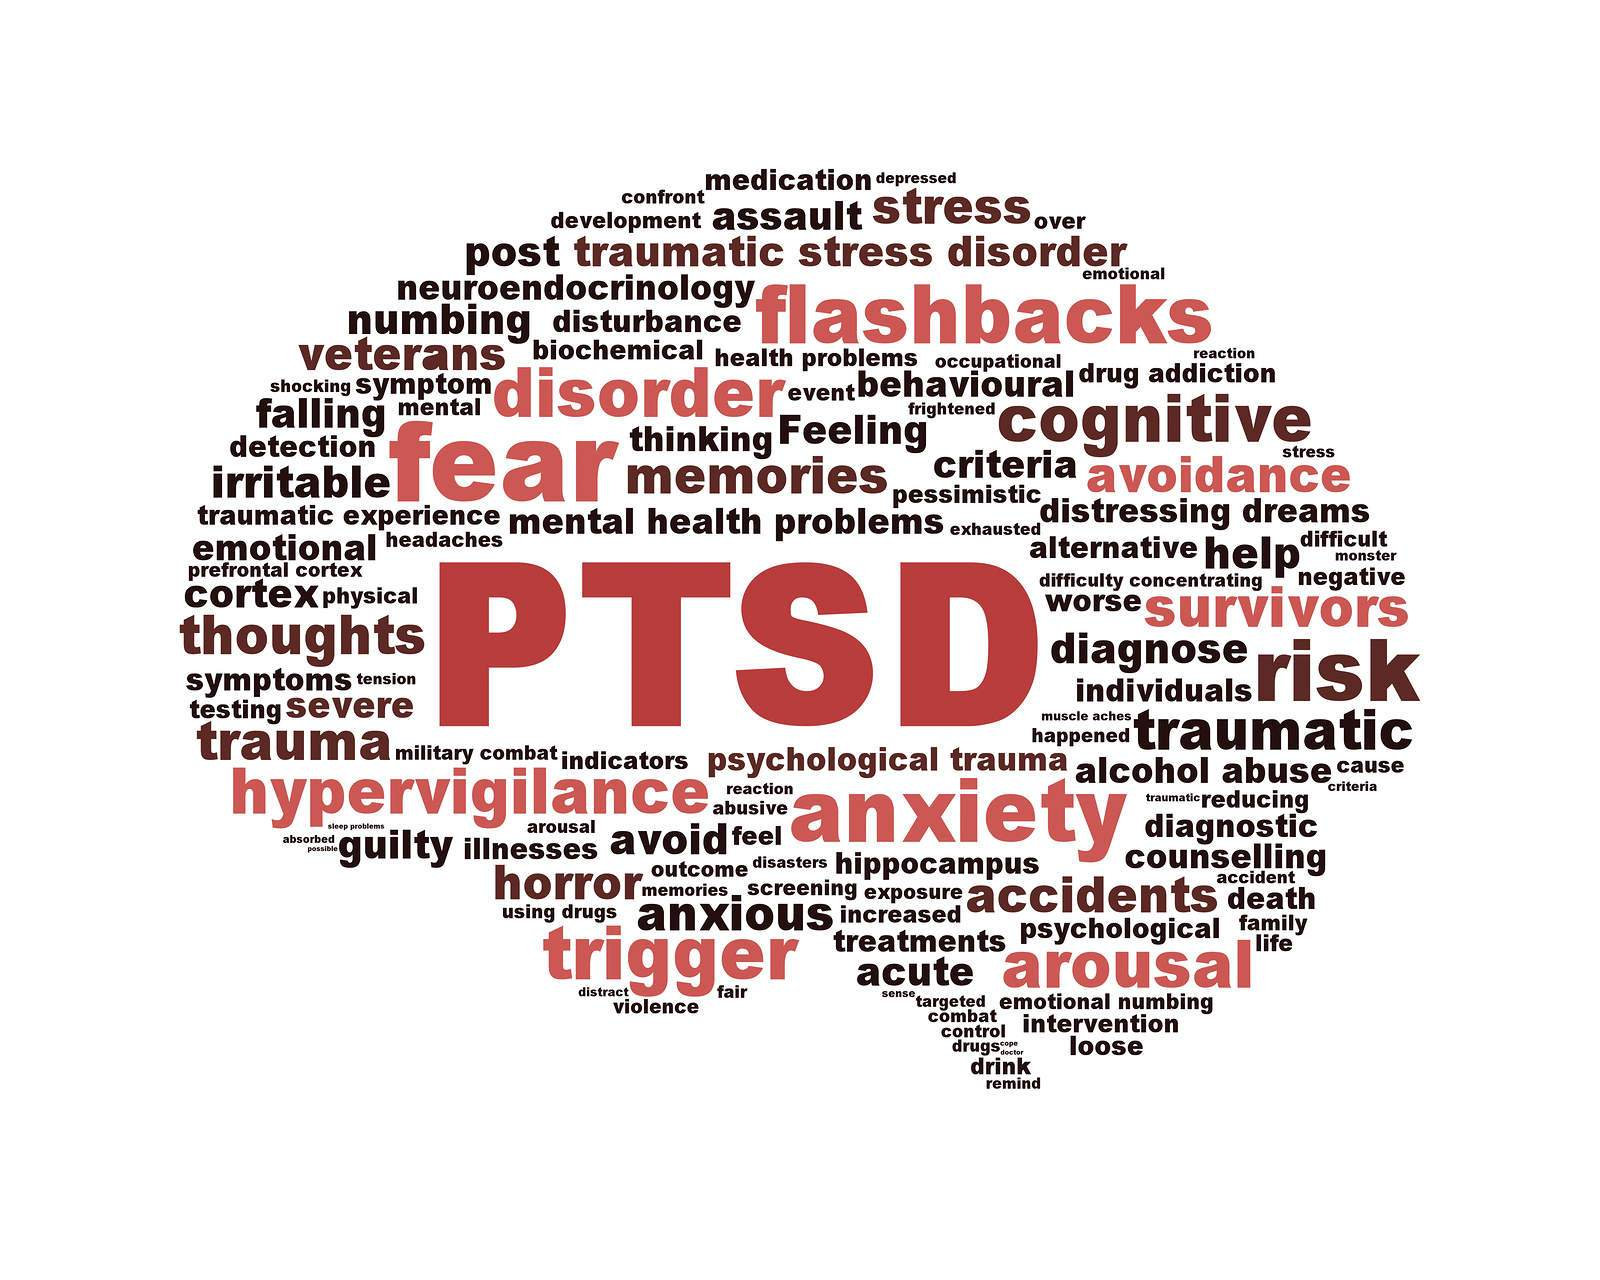 018 Latest Research On Post Traumatic Stress Disorder Ptsd Magnificent Information Paper Topics Full